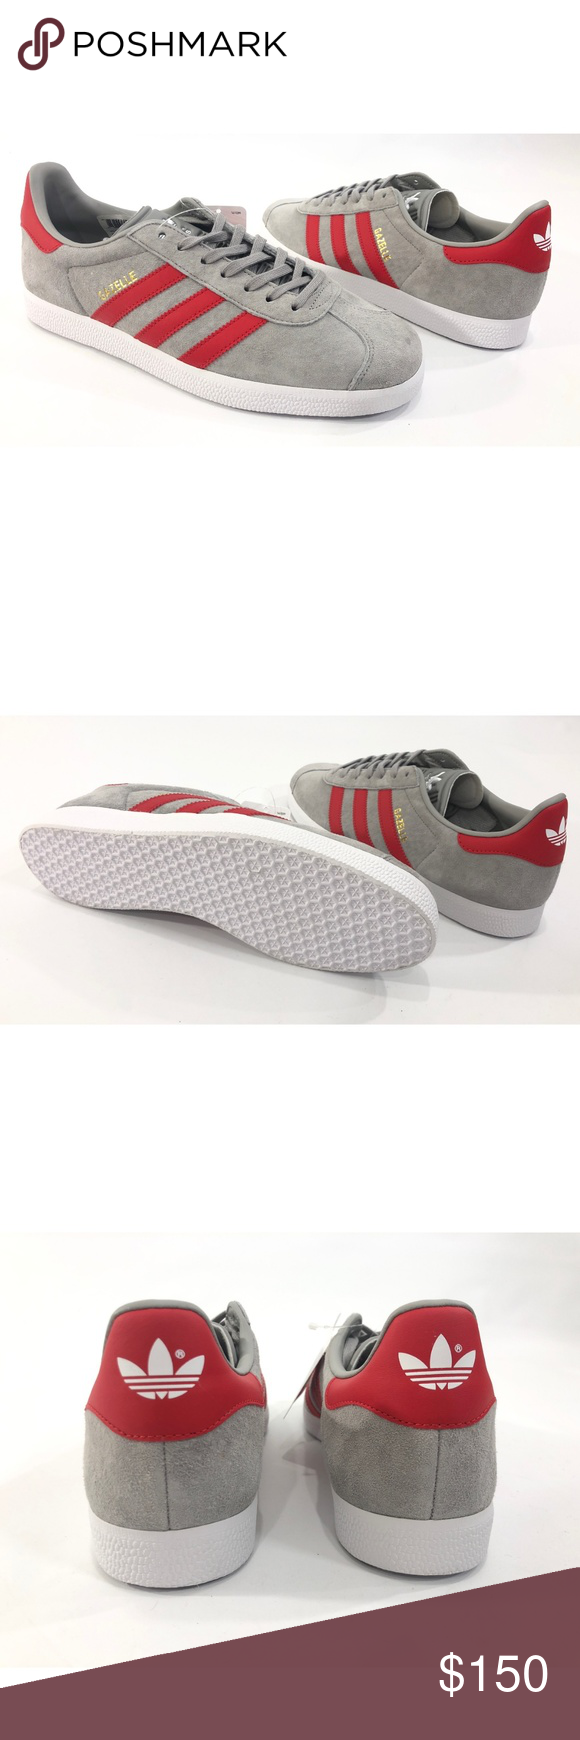 brand new 6734f e5b87 Adidas Gazelle Mens Originals Casual Shoes adidas BB5257 adidas Gazelle  Mens casual shoes Size 9.5 Grey  White  Red Low top New without box  53A819 ...